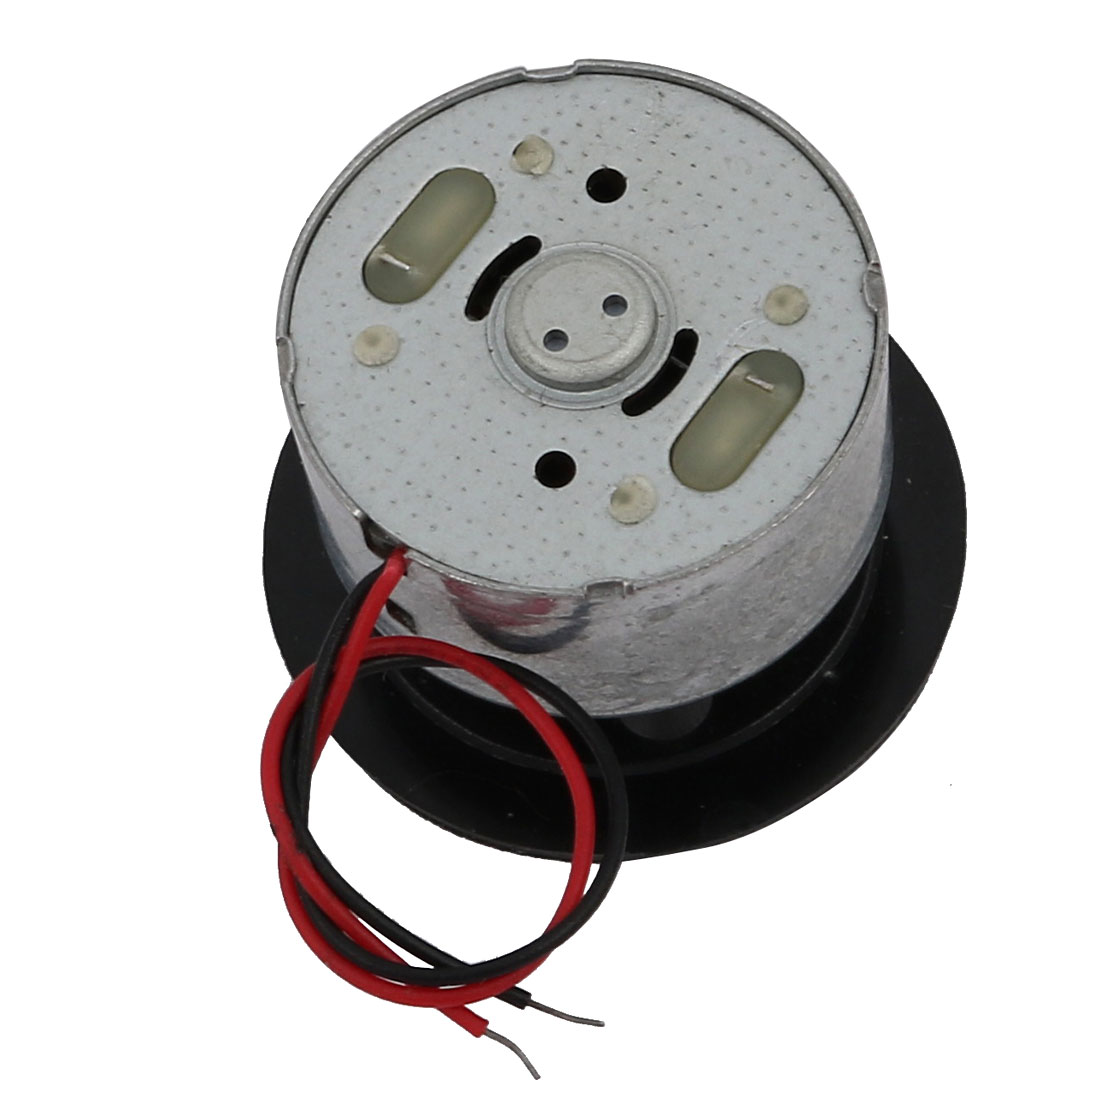 Unique Bargains Dc 59v Rotary Speed Electric Mini Motor For Dvd Home Wiring Small Appliance W Wire